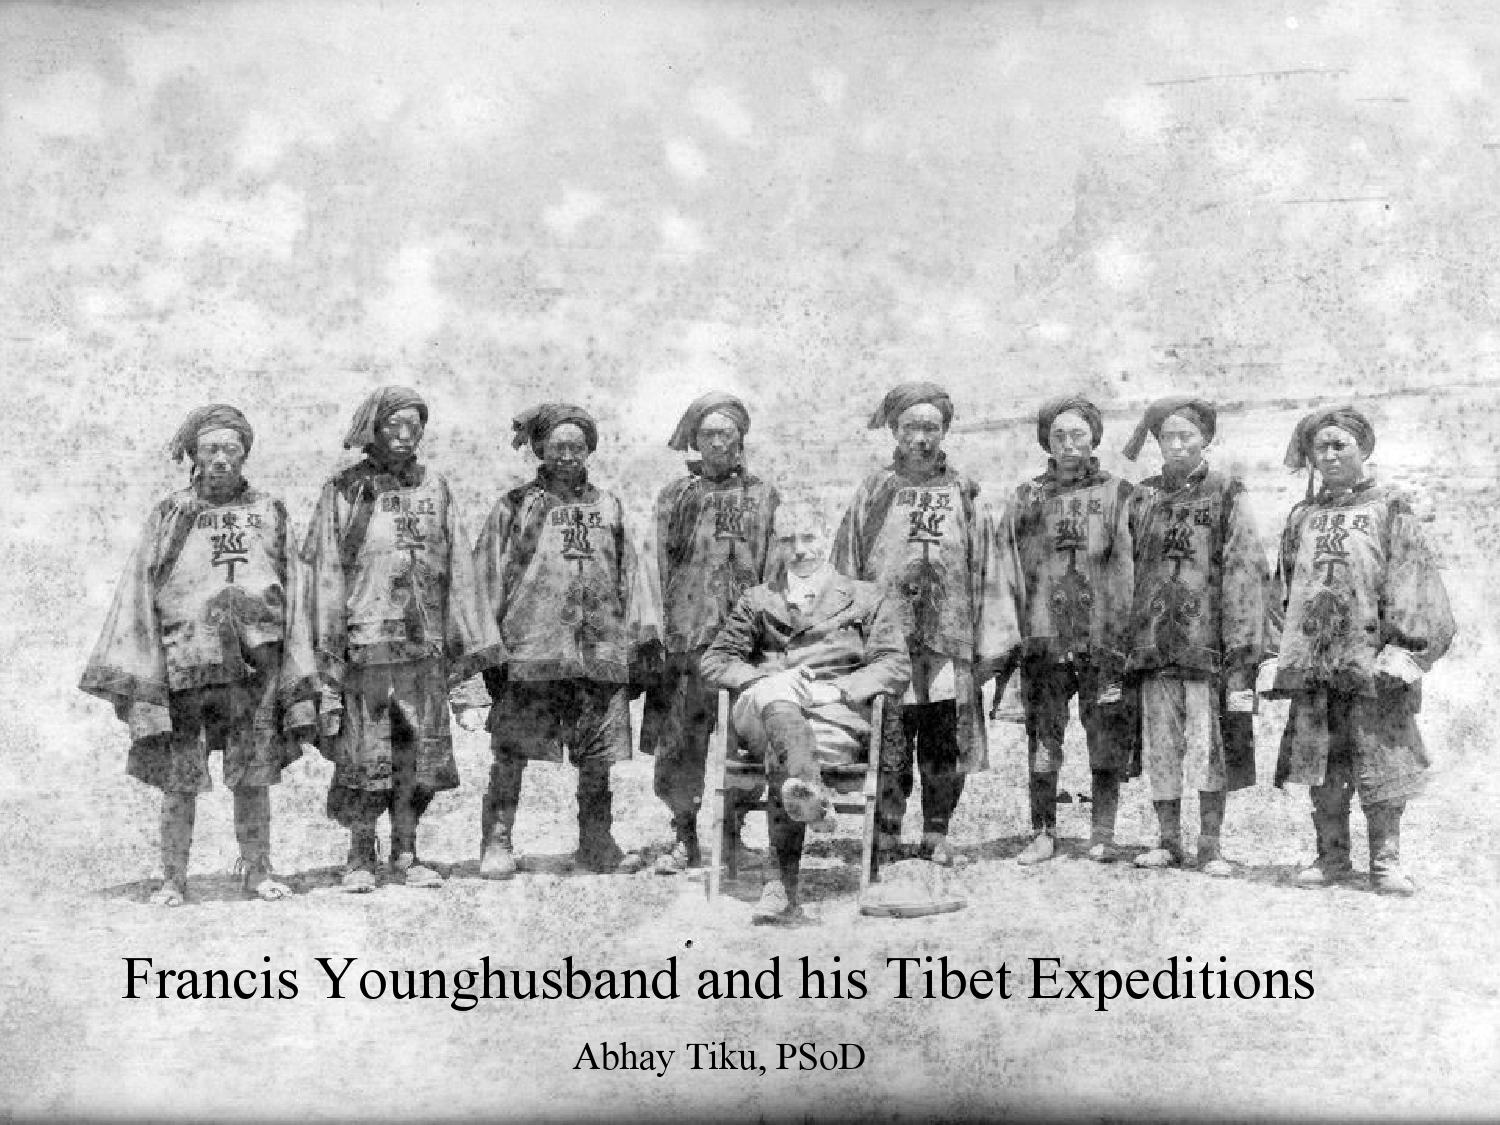 Expedition to Tibet 44